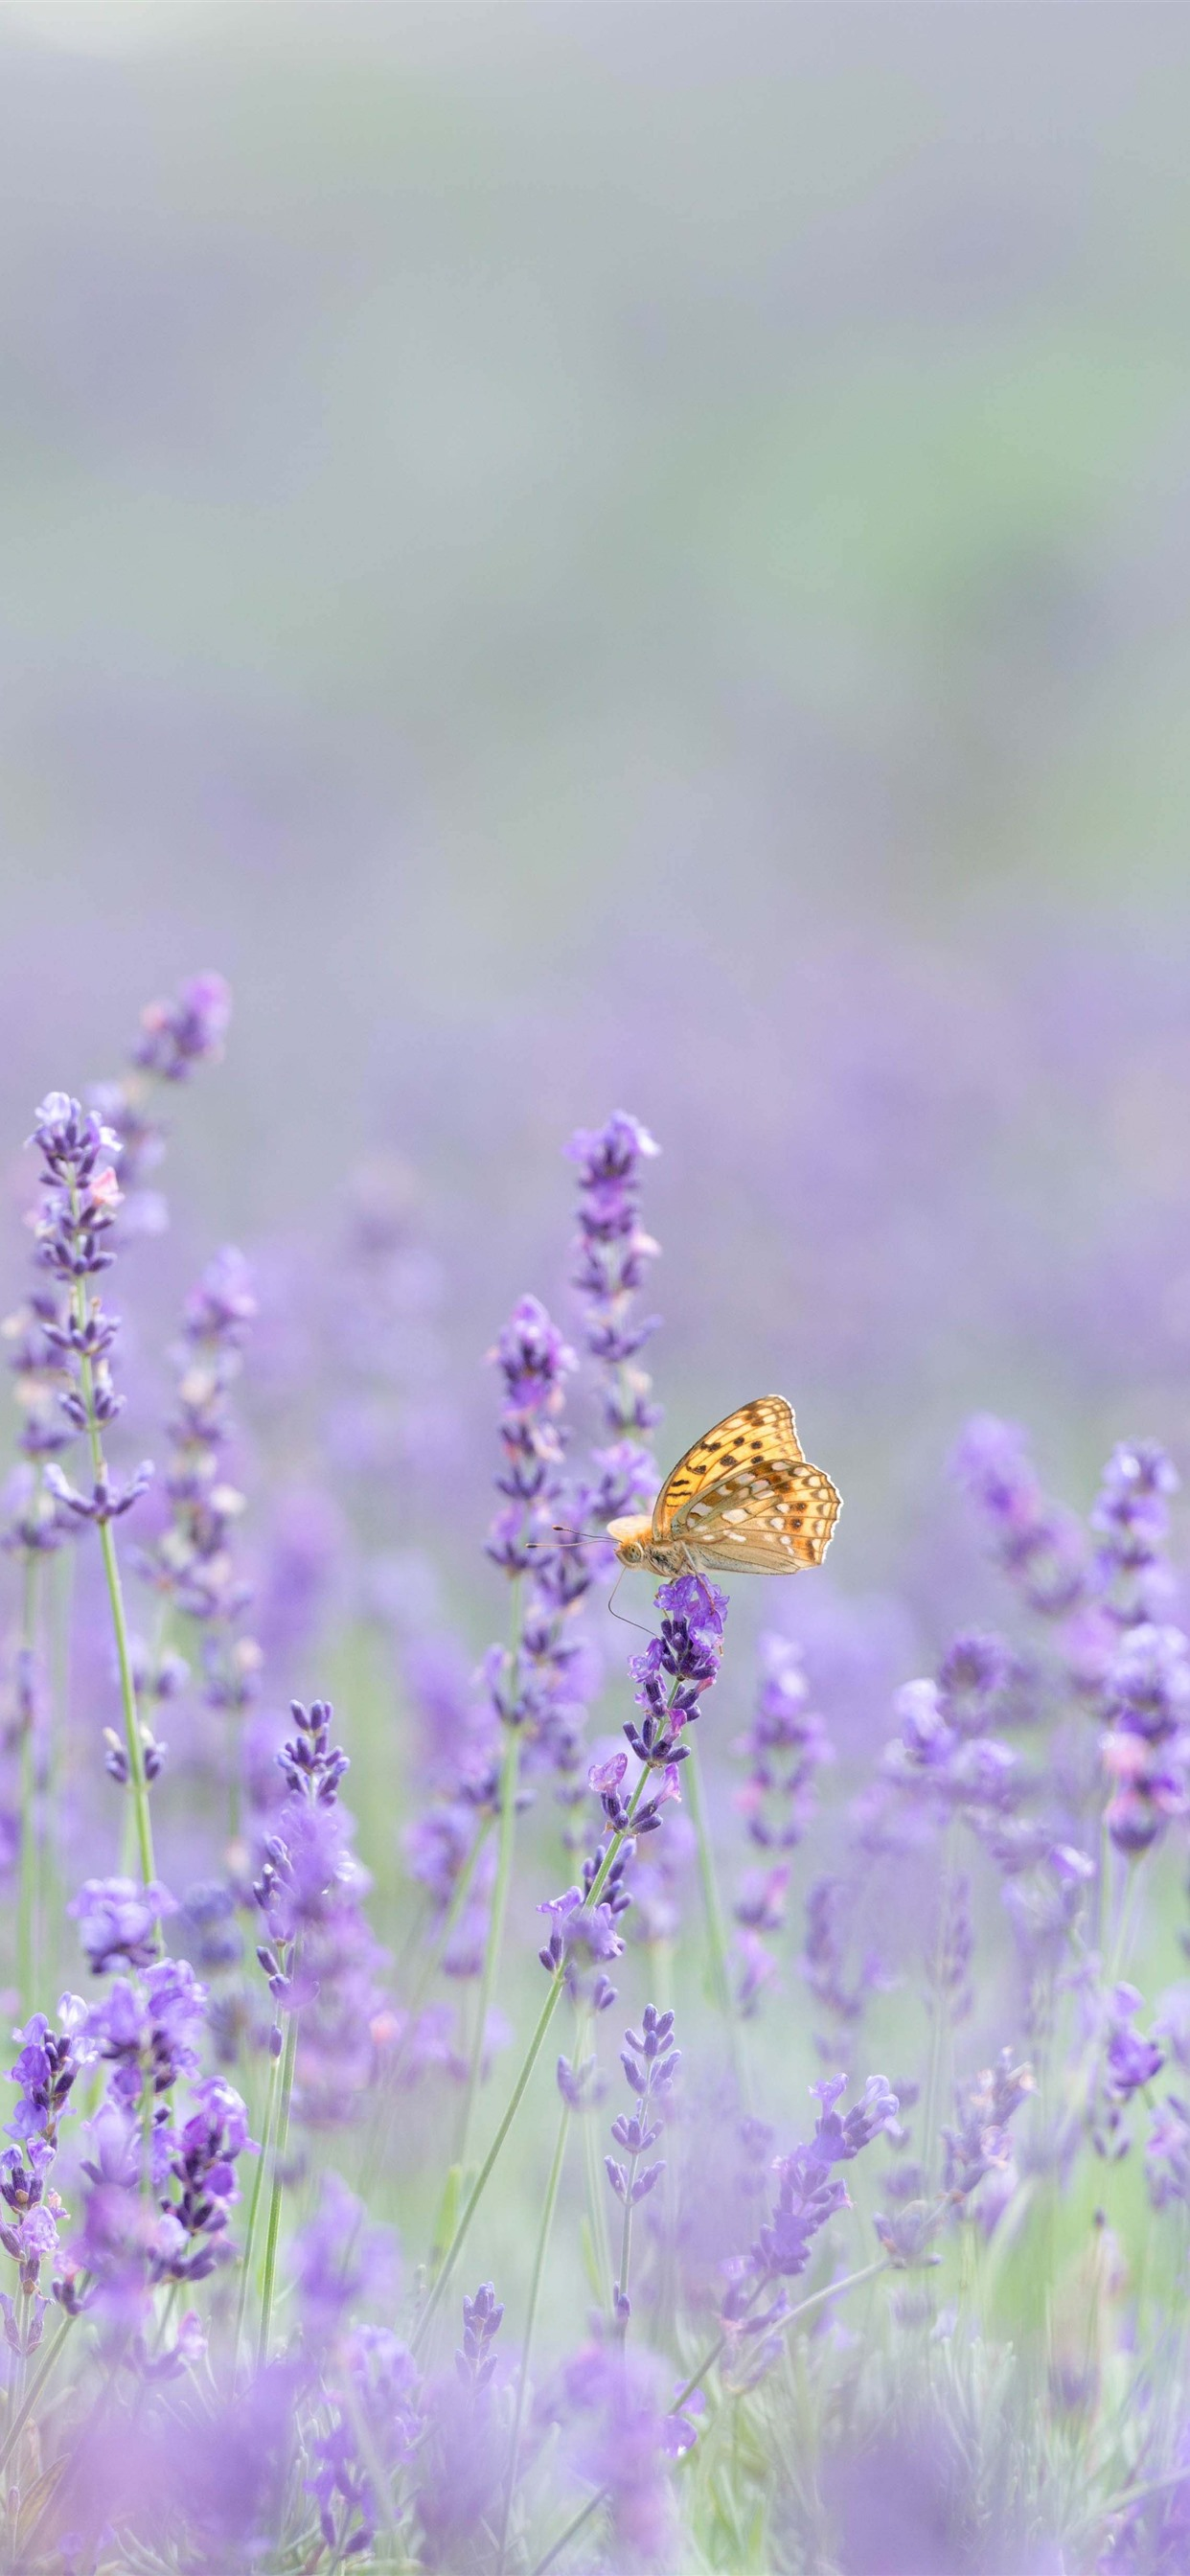 Pink Lavender Flowers Butterfly Hazy 1242x2688 Iphone 11 Pro Xs Max Wallpaper Background Picture Image